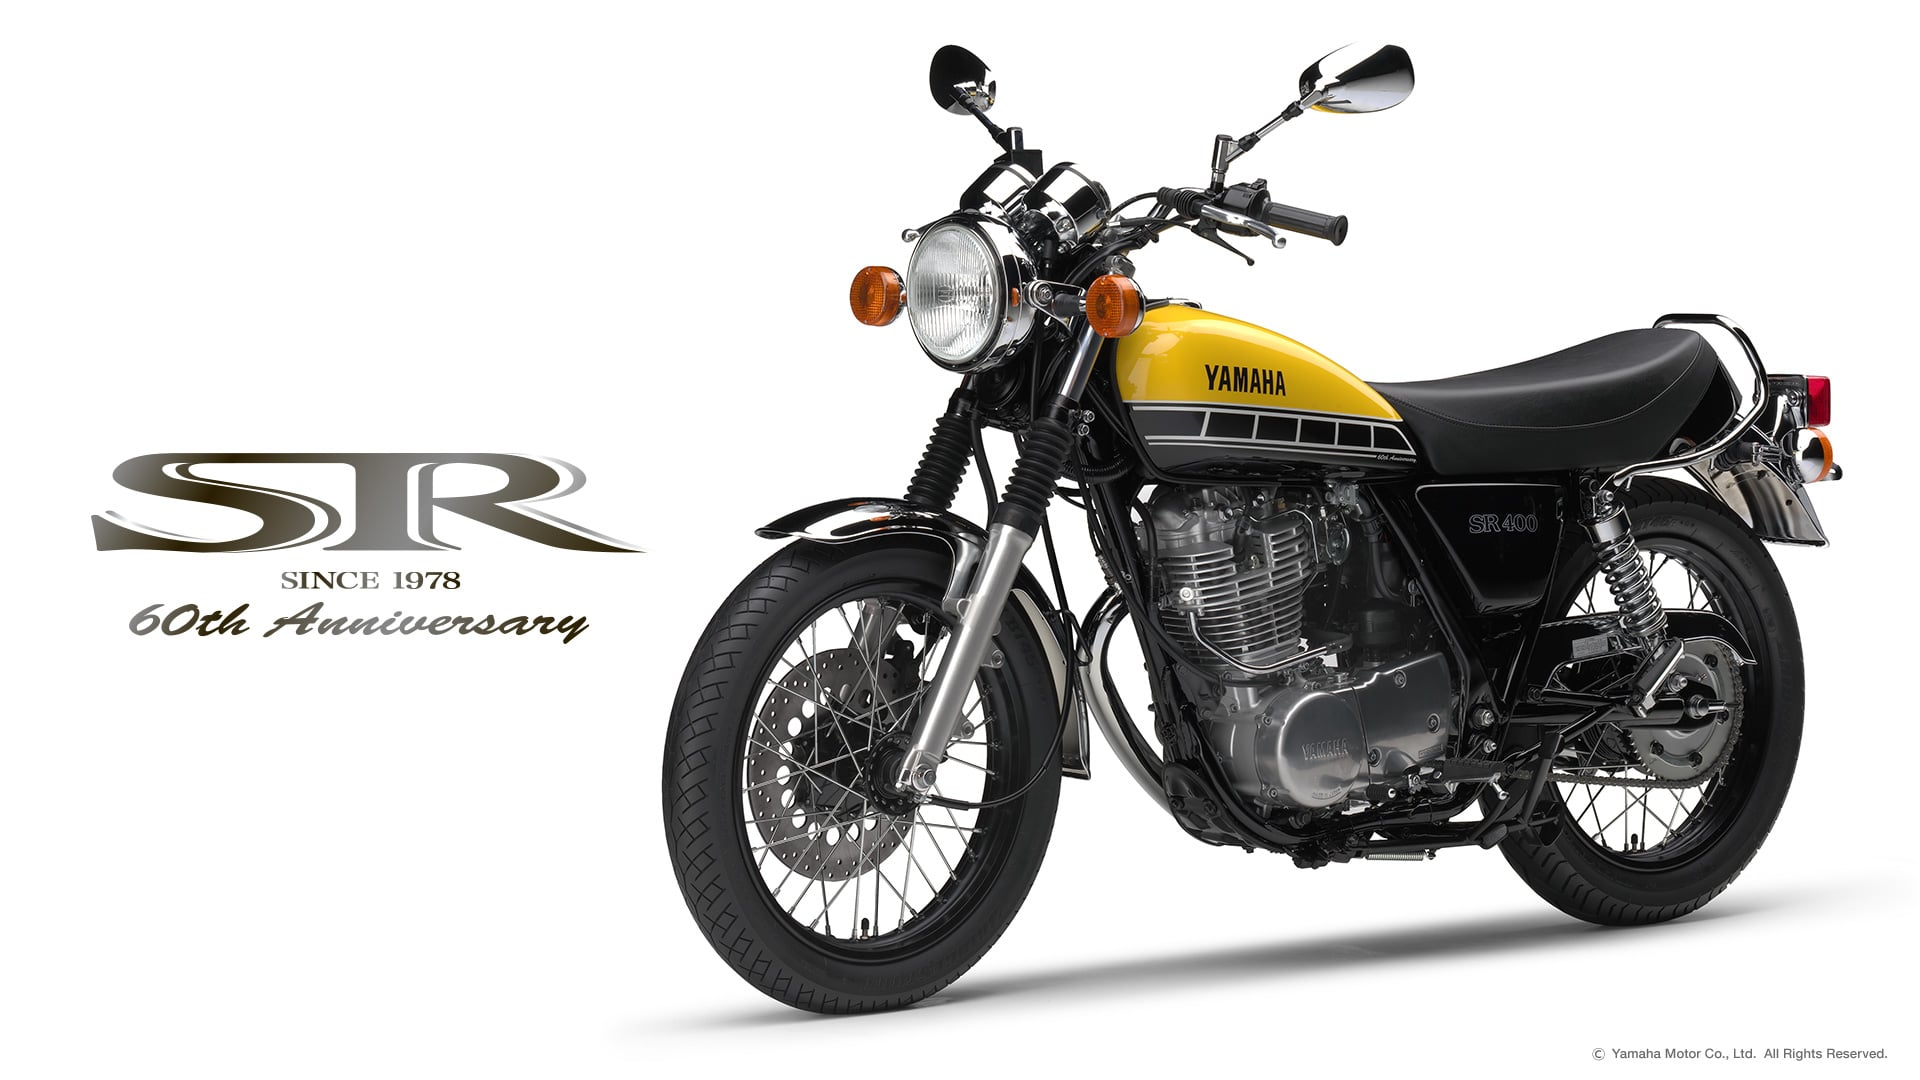 The Yamaha SR400 60th Anniversary Edition is set to be a collectible ...